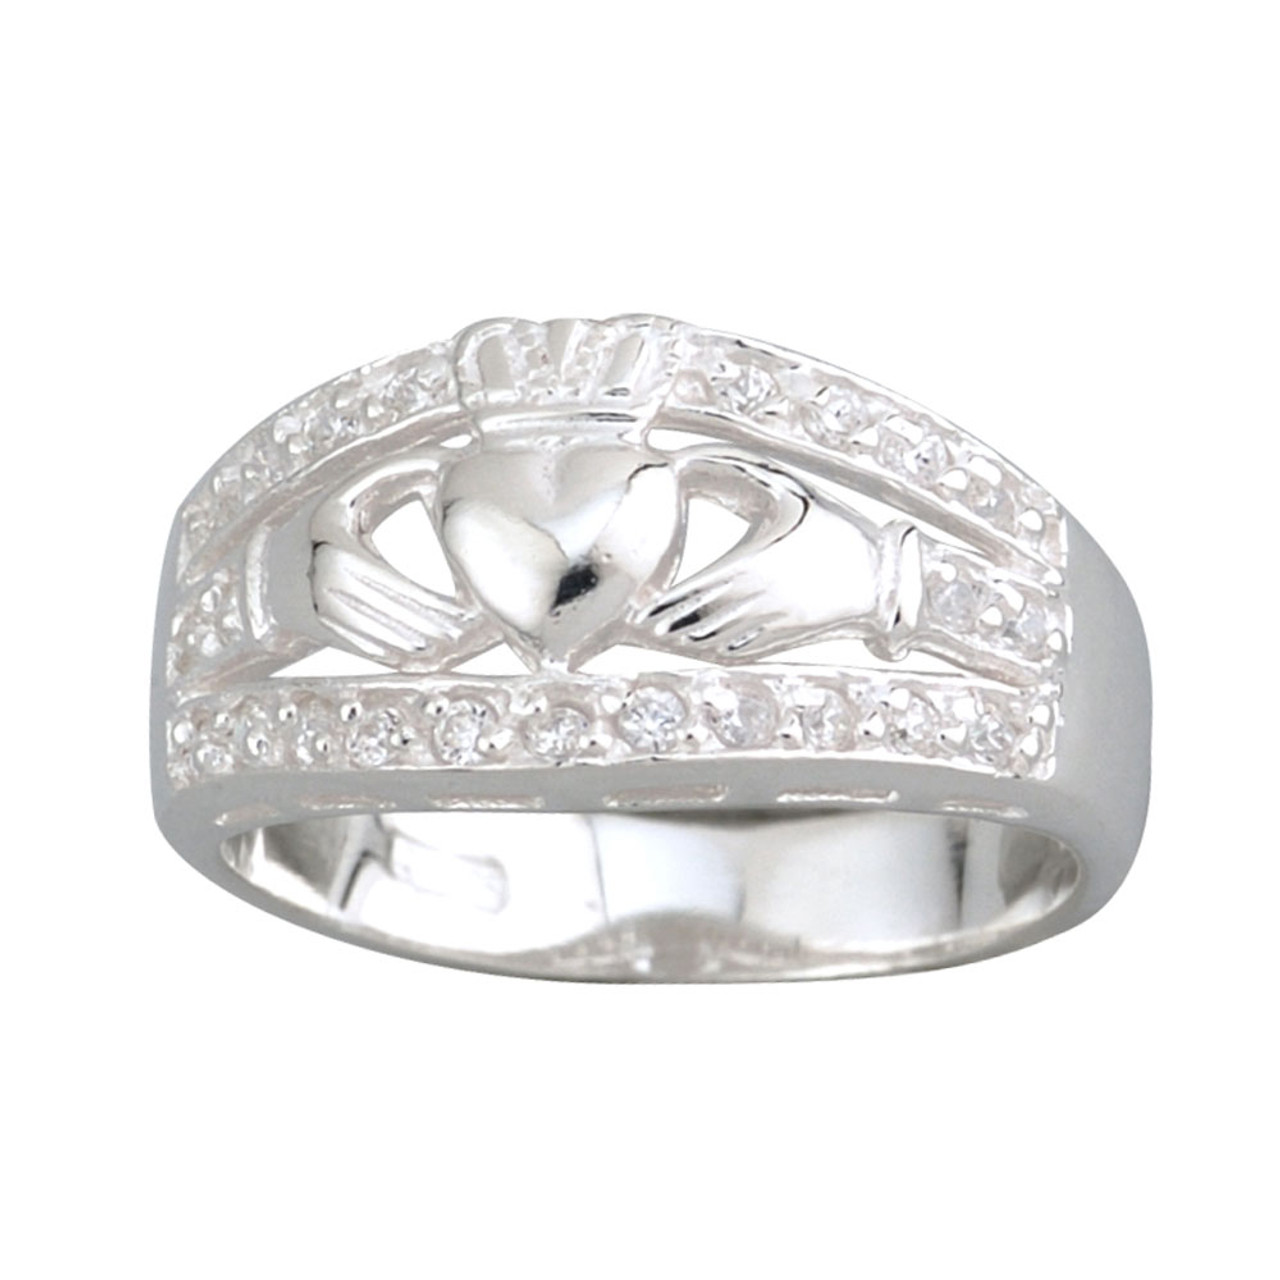 Claddagh Ring with Cubic Zirconia on Wide Band